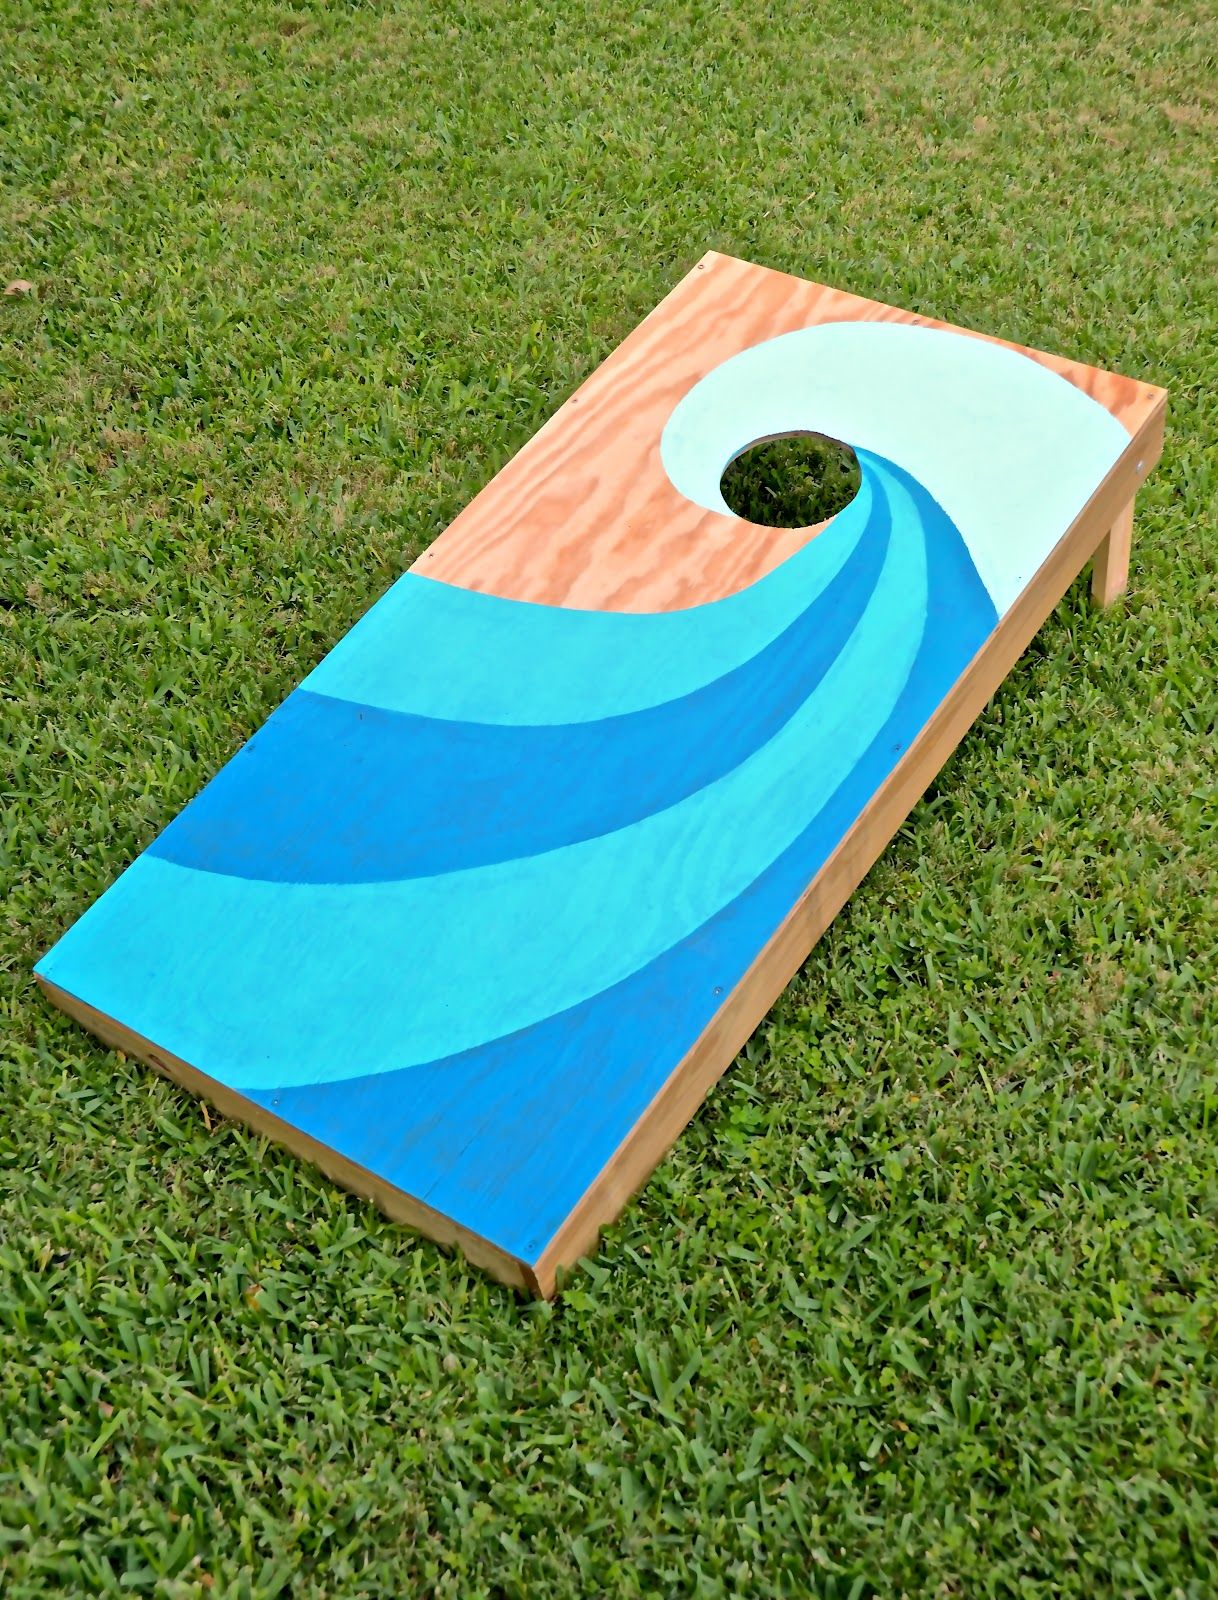 Diy Totally Tubular Corn Hole With A Surfboard Bean Bag Boards